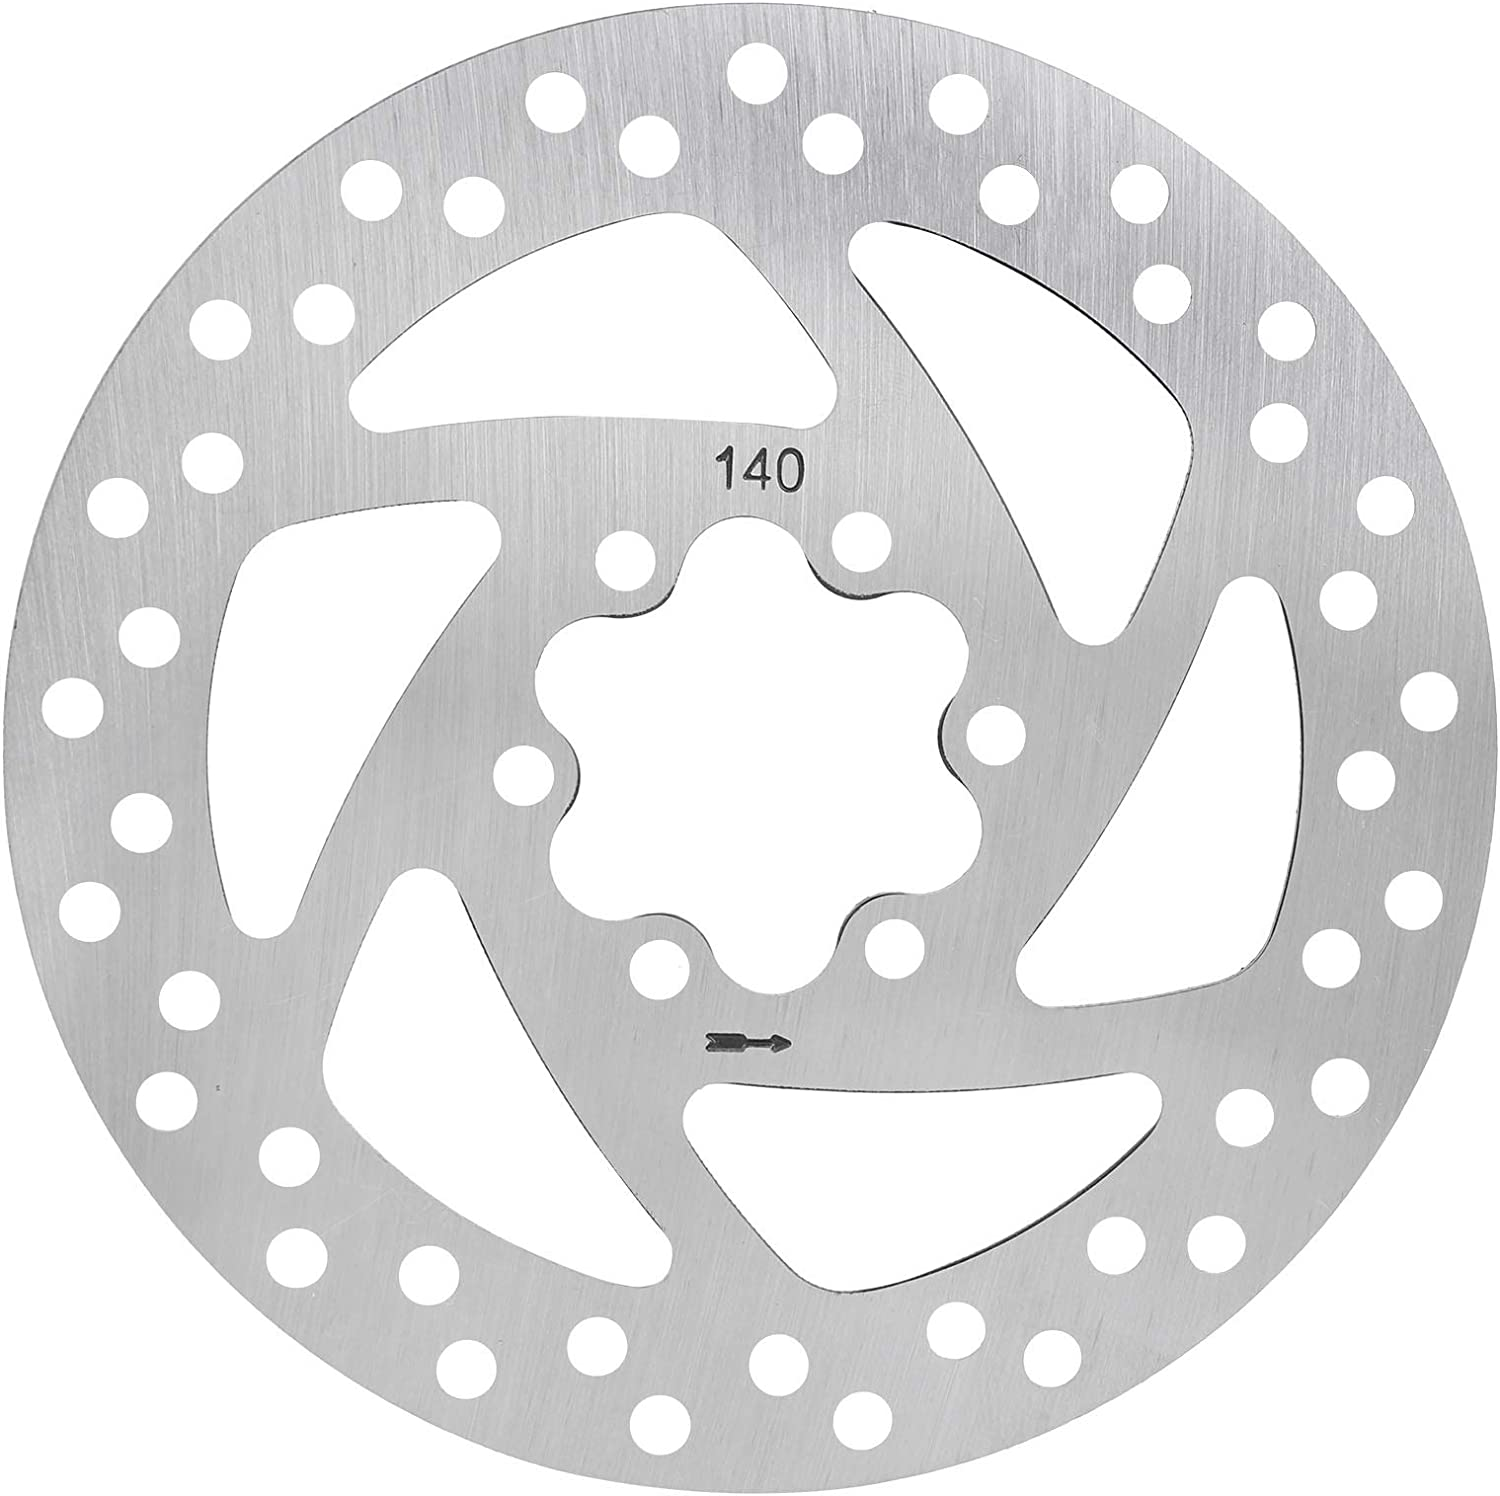 QYSZYG Brake disc Electric Materi 67% Tulsa Mall OFF of fixed price Rotor Scooter Part